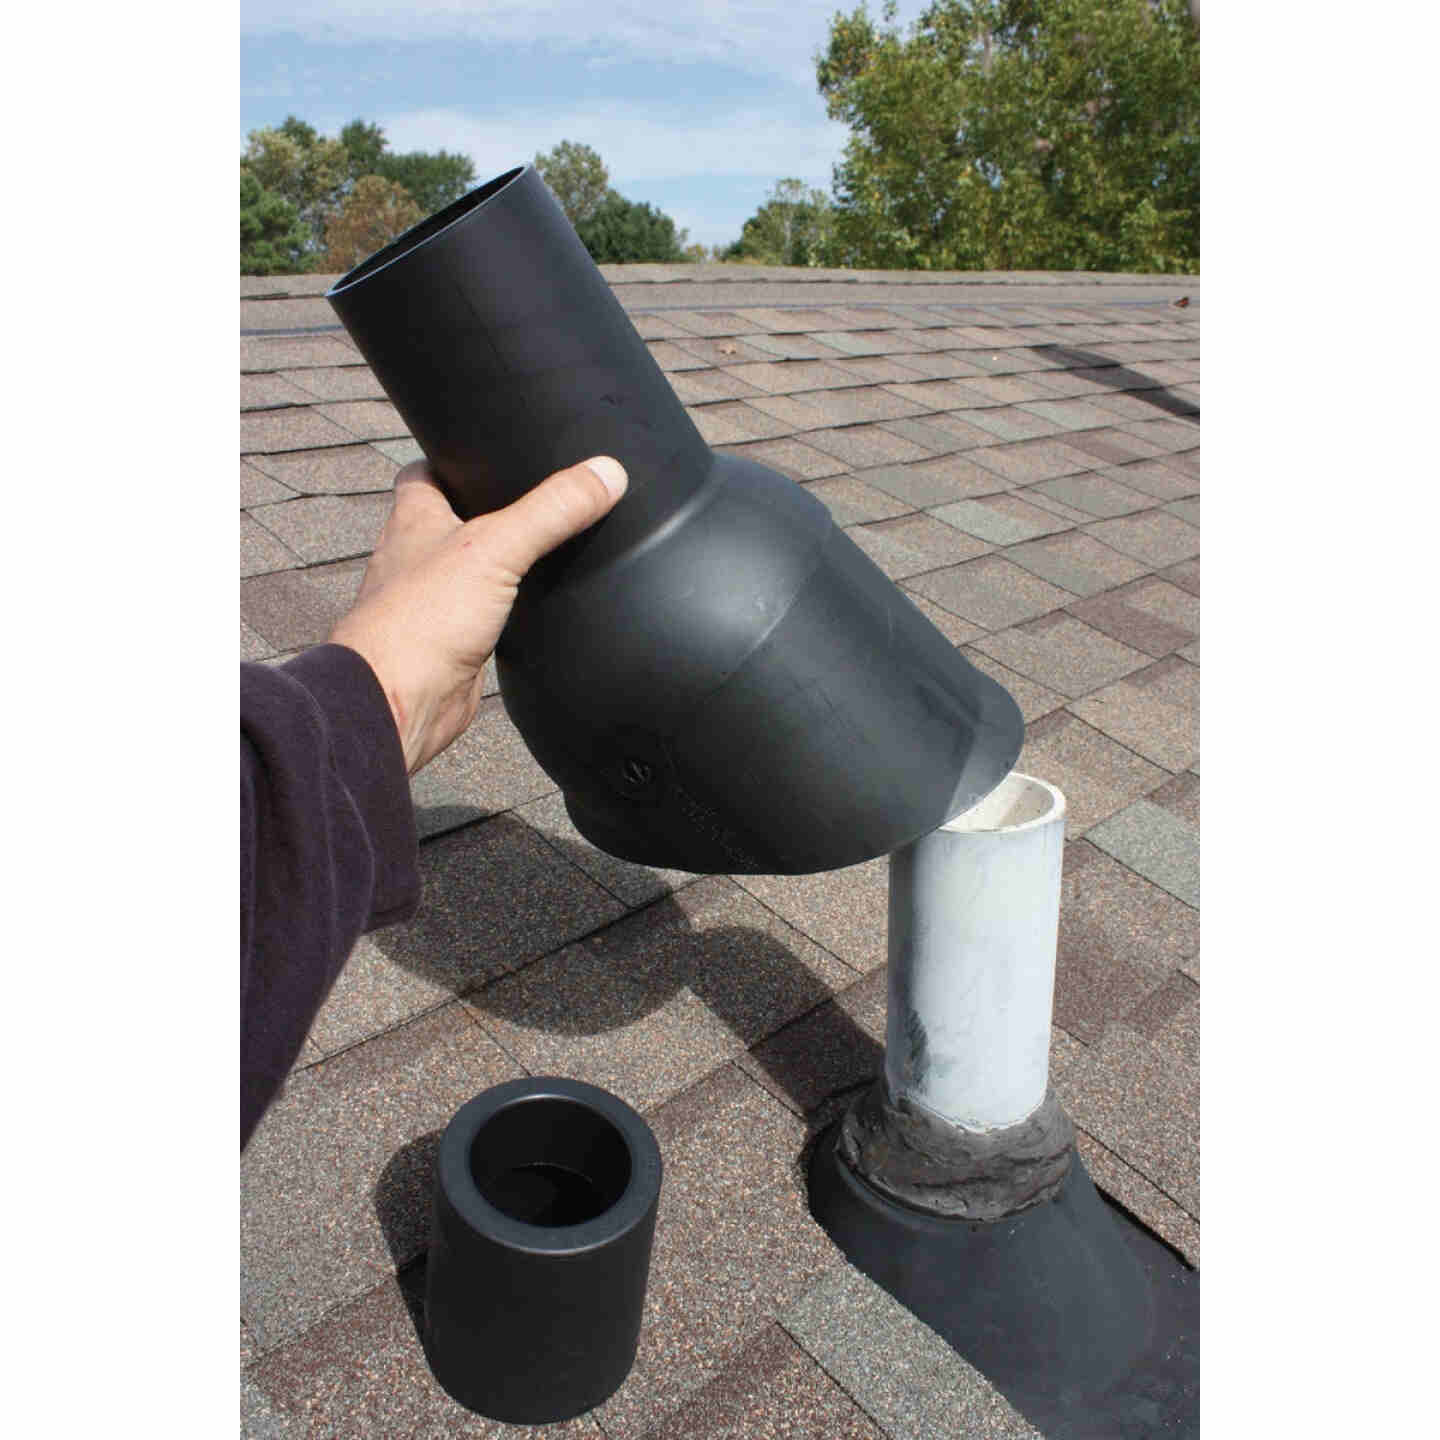 Perma-Boot TPO Plastic 3in1 Roof Pipe Flashing, fits 1-1/2 In., 2 In. & 3 In. Pipes Image 2